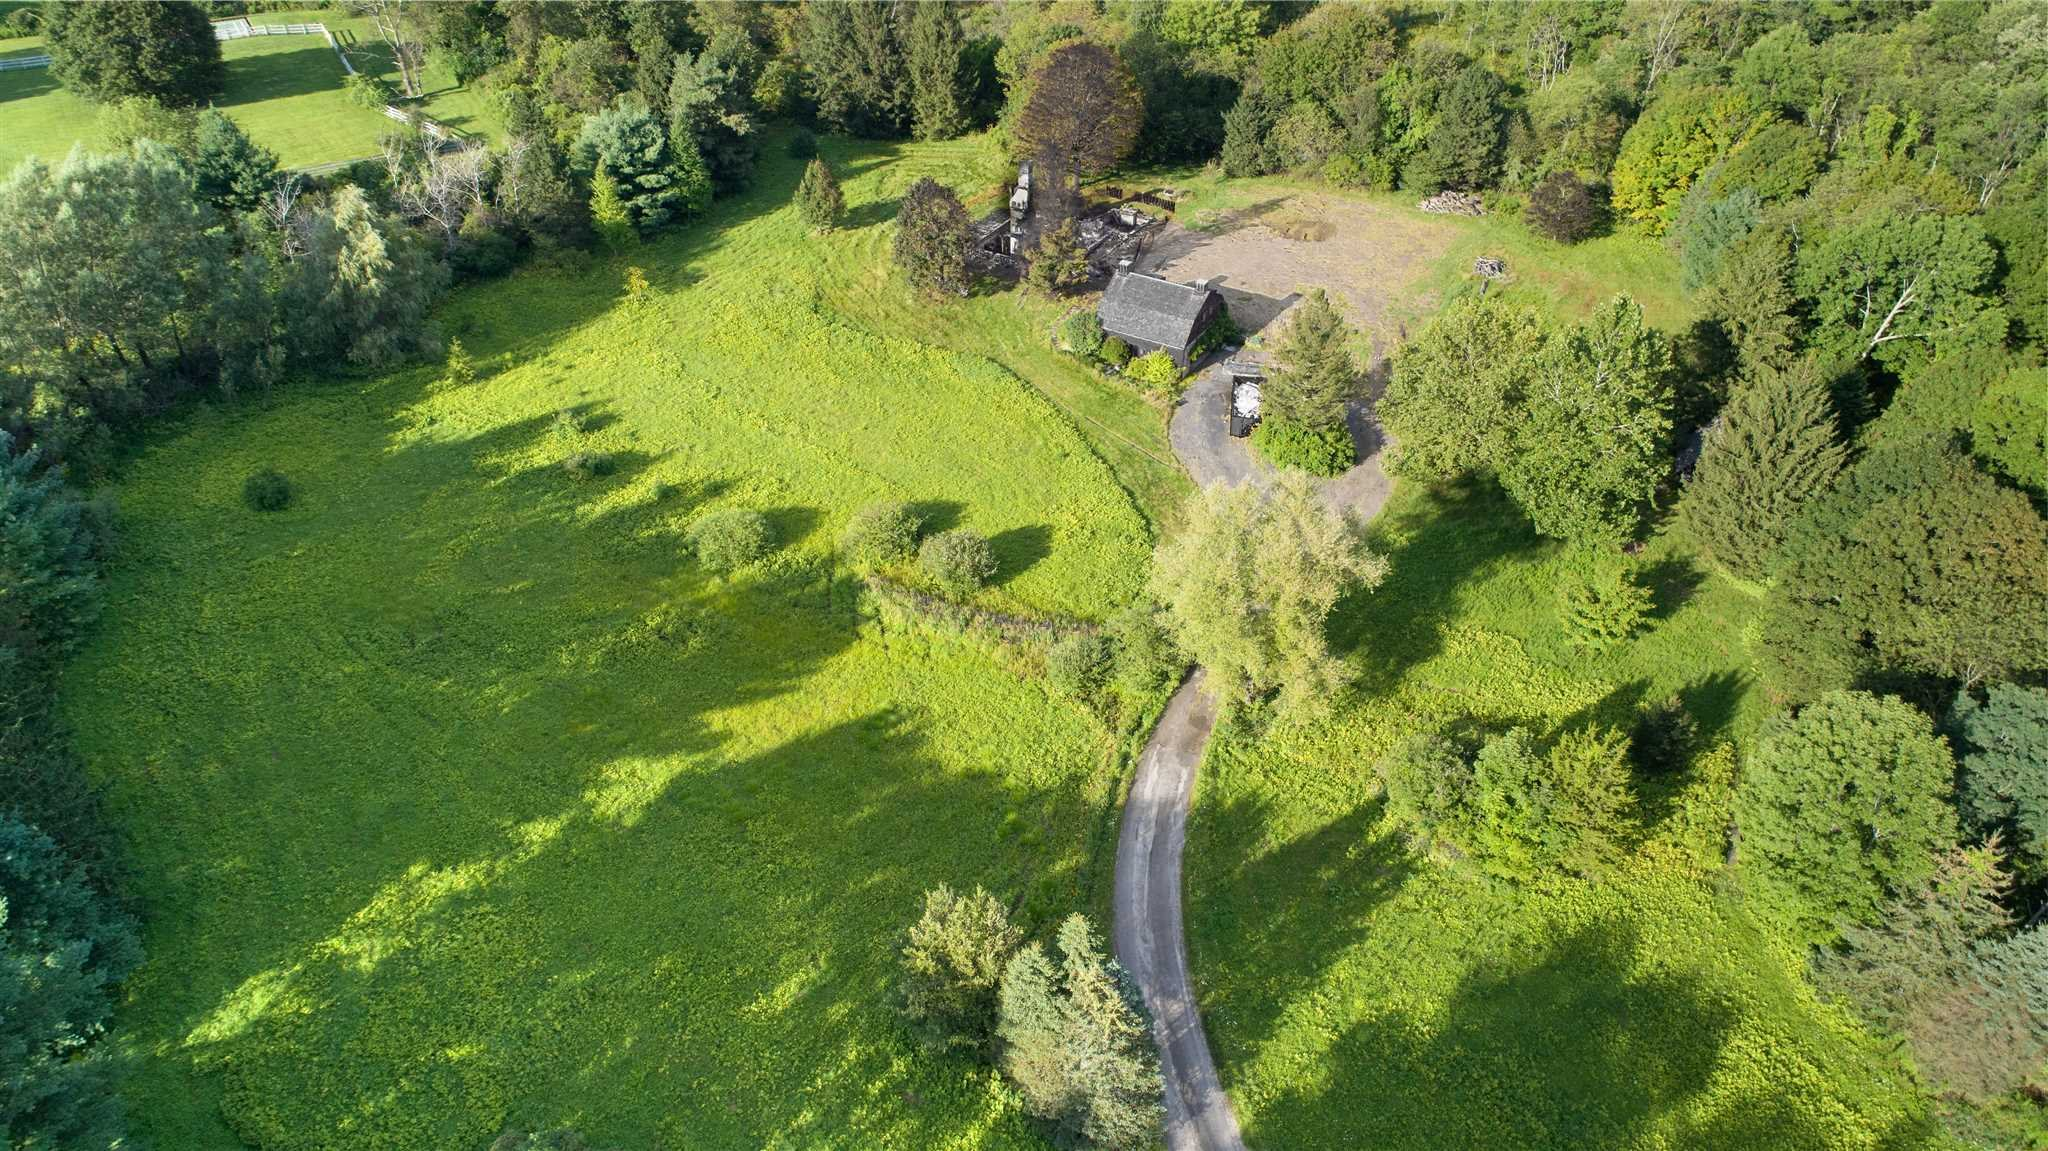 Land for Sale at 5 MEETING HOUSE Road 5 MEETING HOUSE Road Pawling, New York 12564 United States